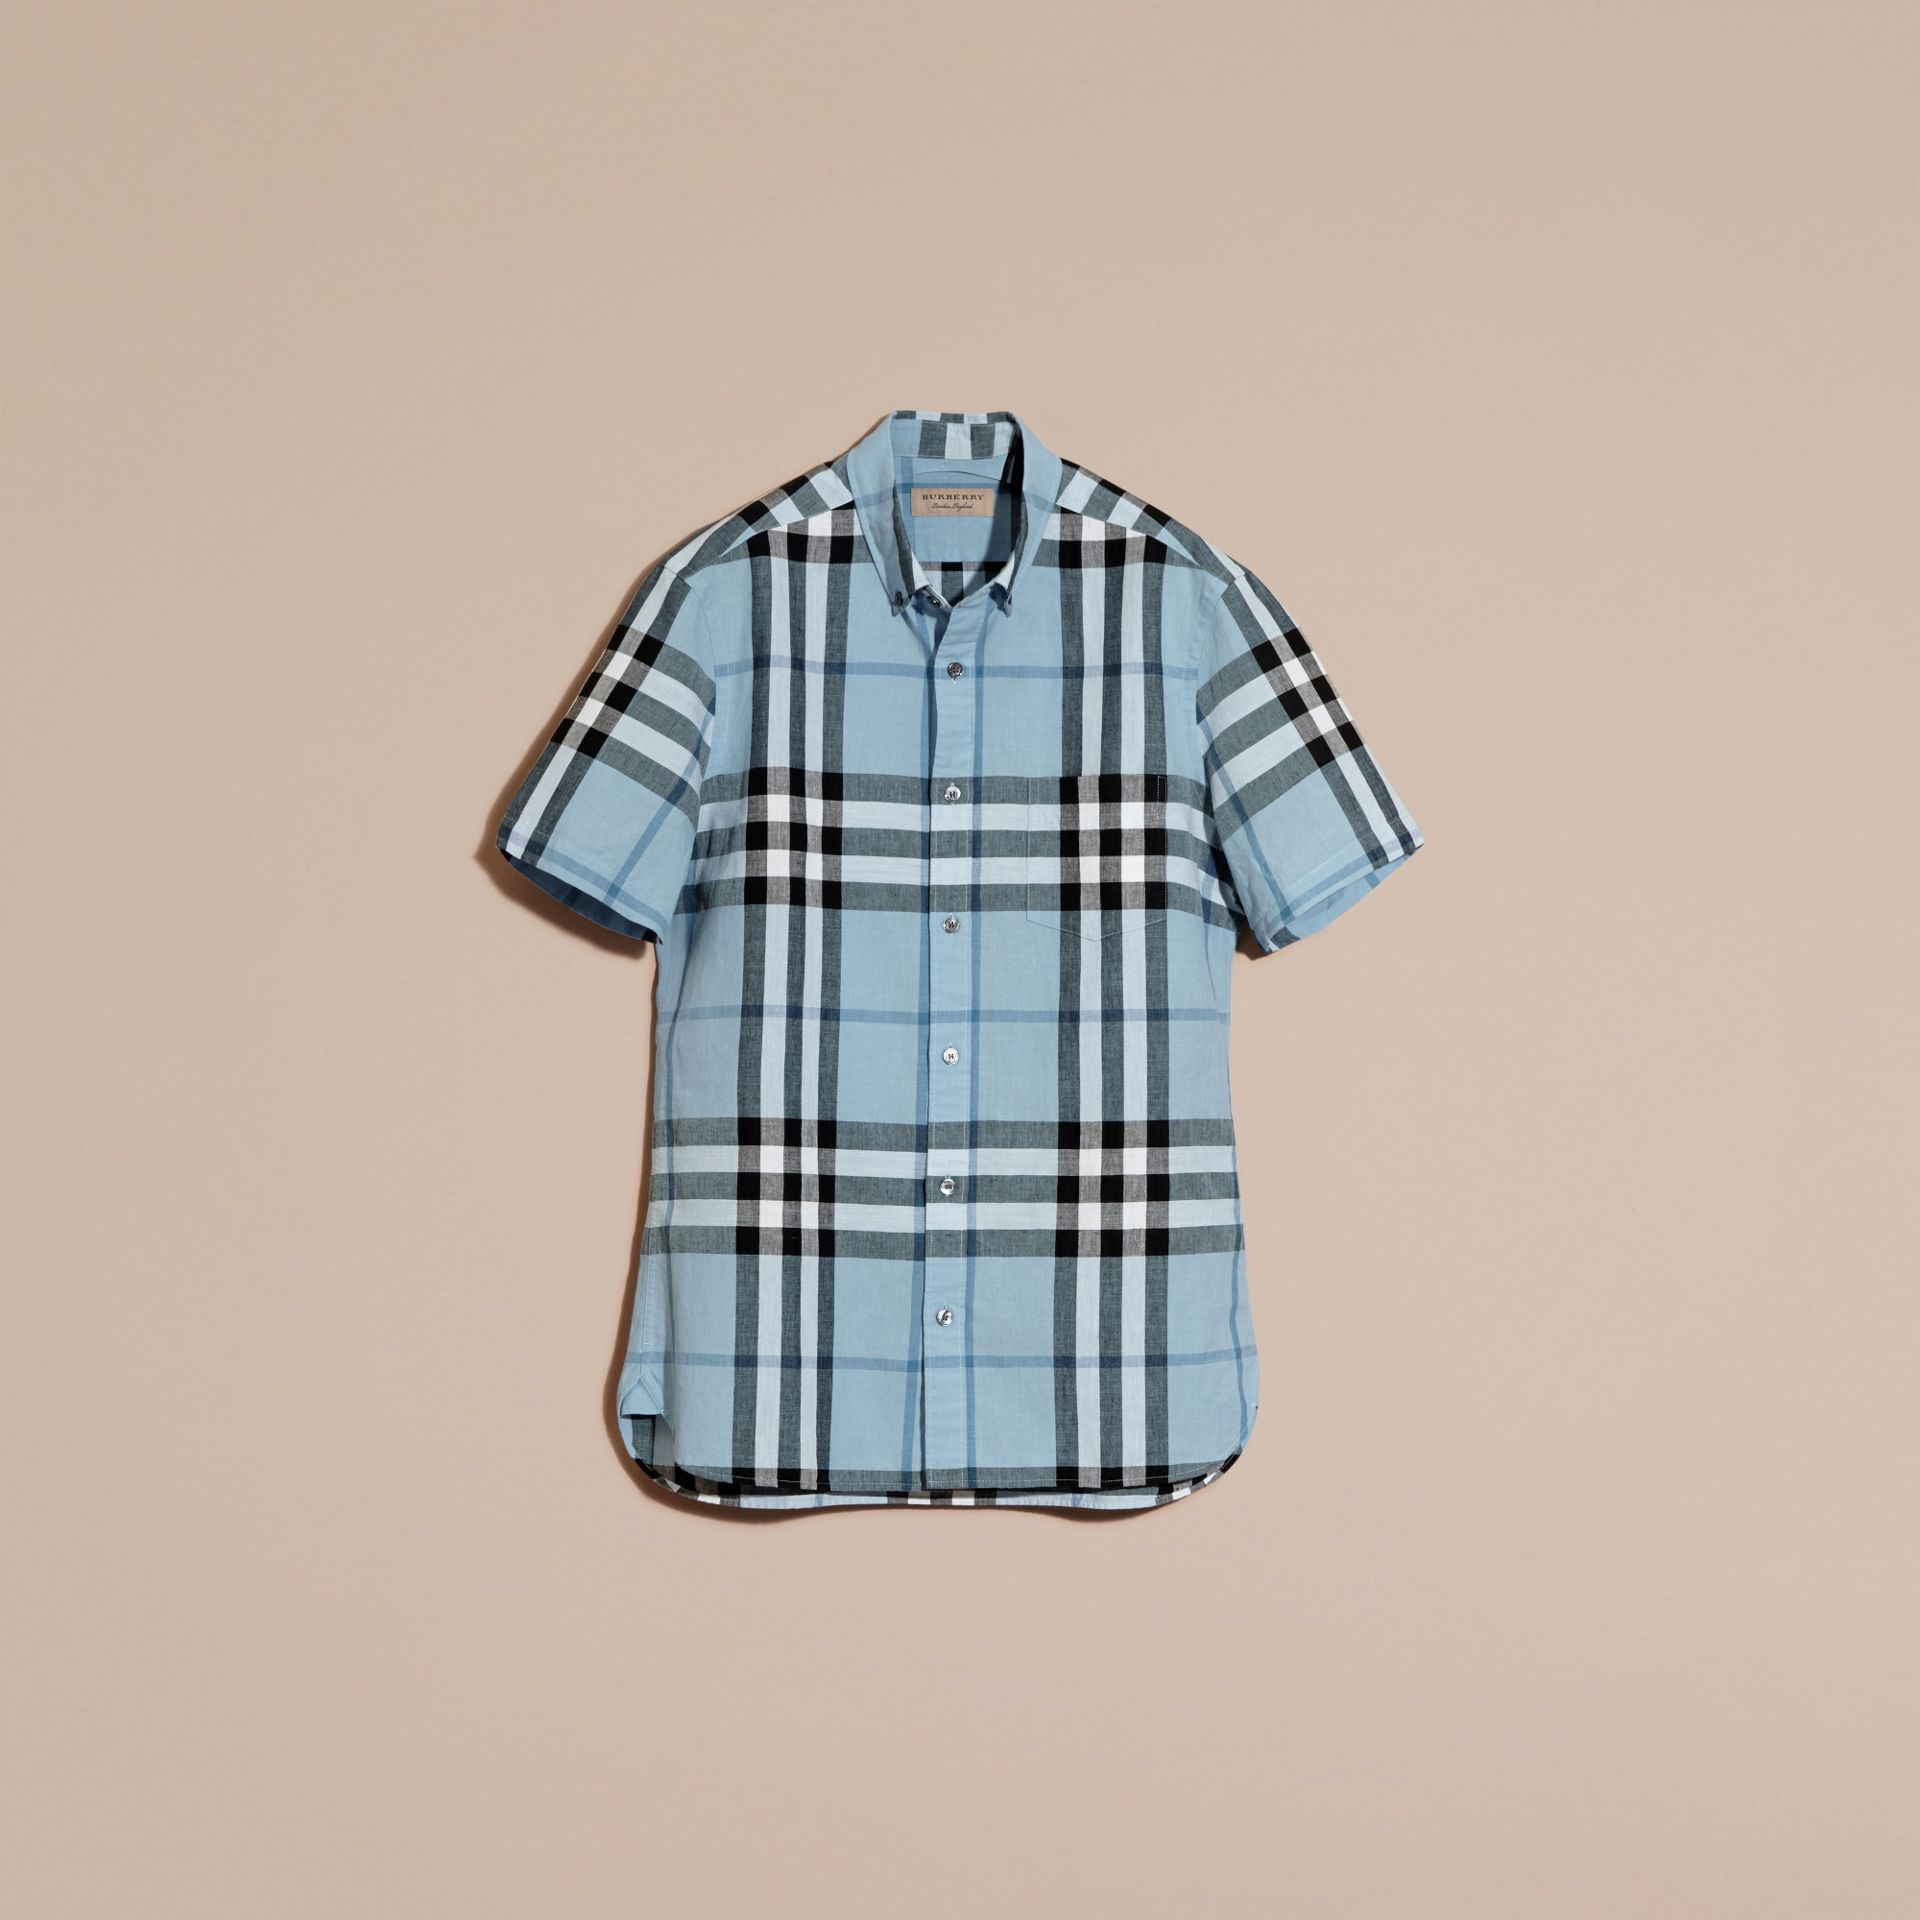 Pale blue Short-sleeved Check Linen Cotton Shirt Pale Blue - gallery image 3